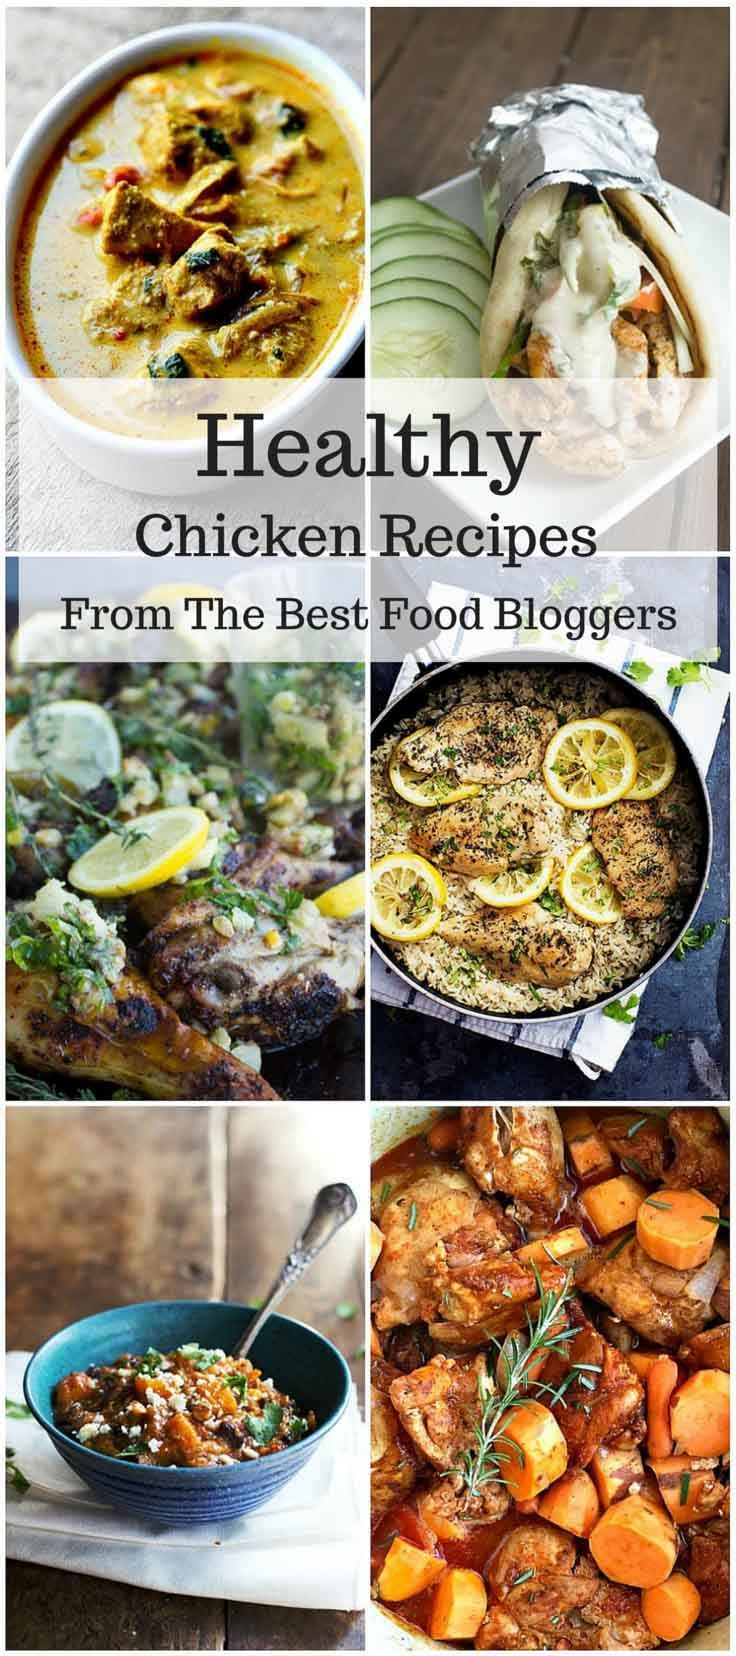 Healthy Chicken Recipes – A list of easy and tasty chicken recipes from some of the best food bloggers